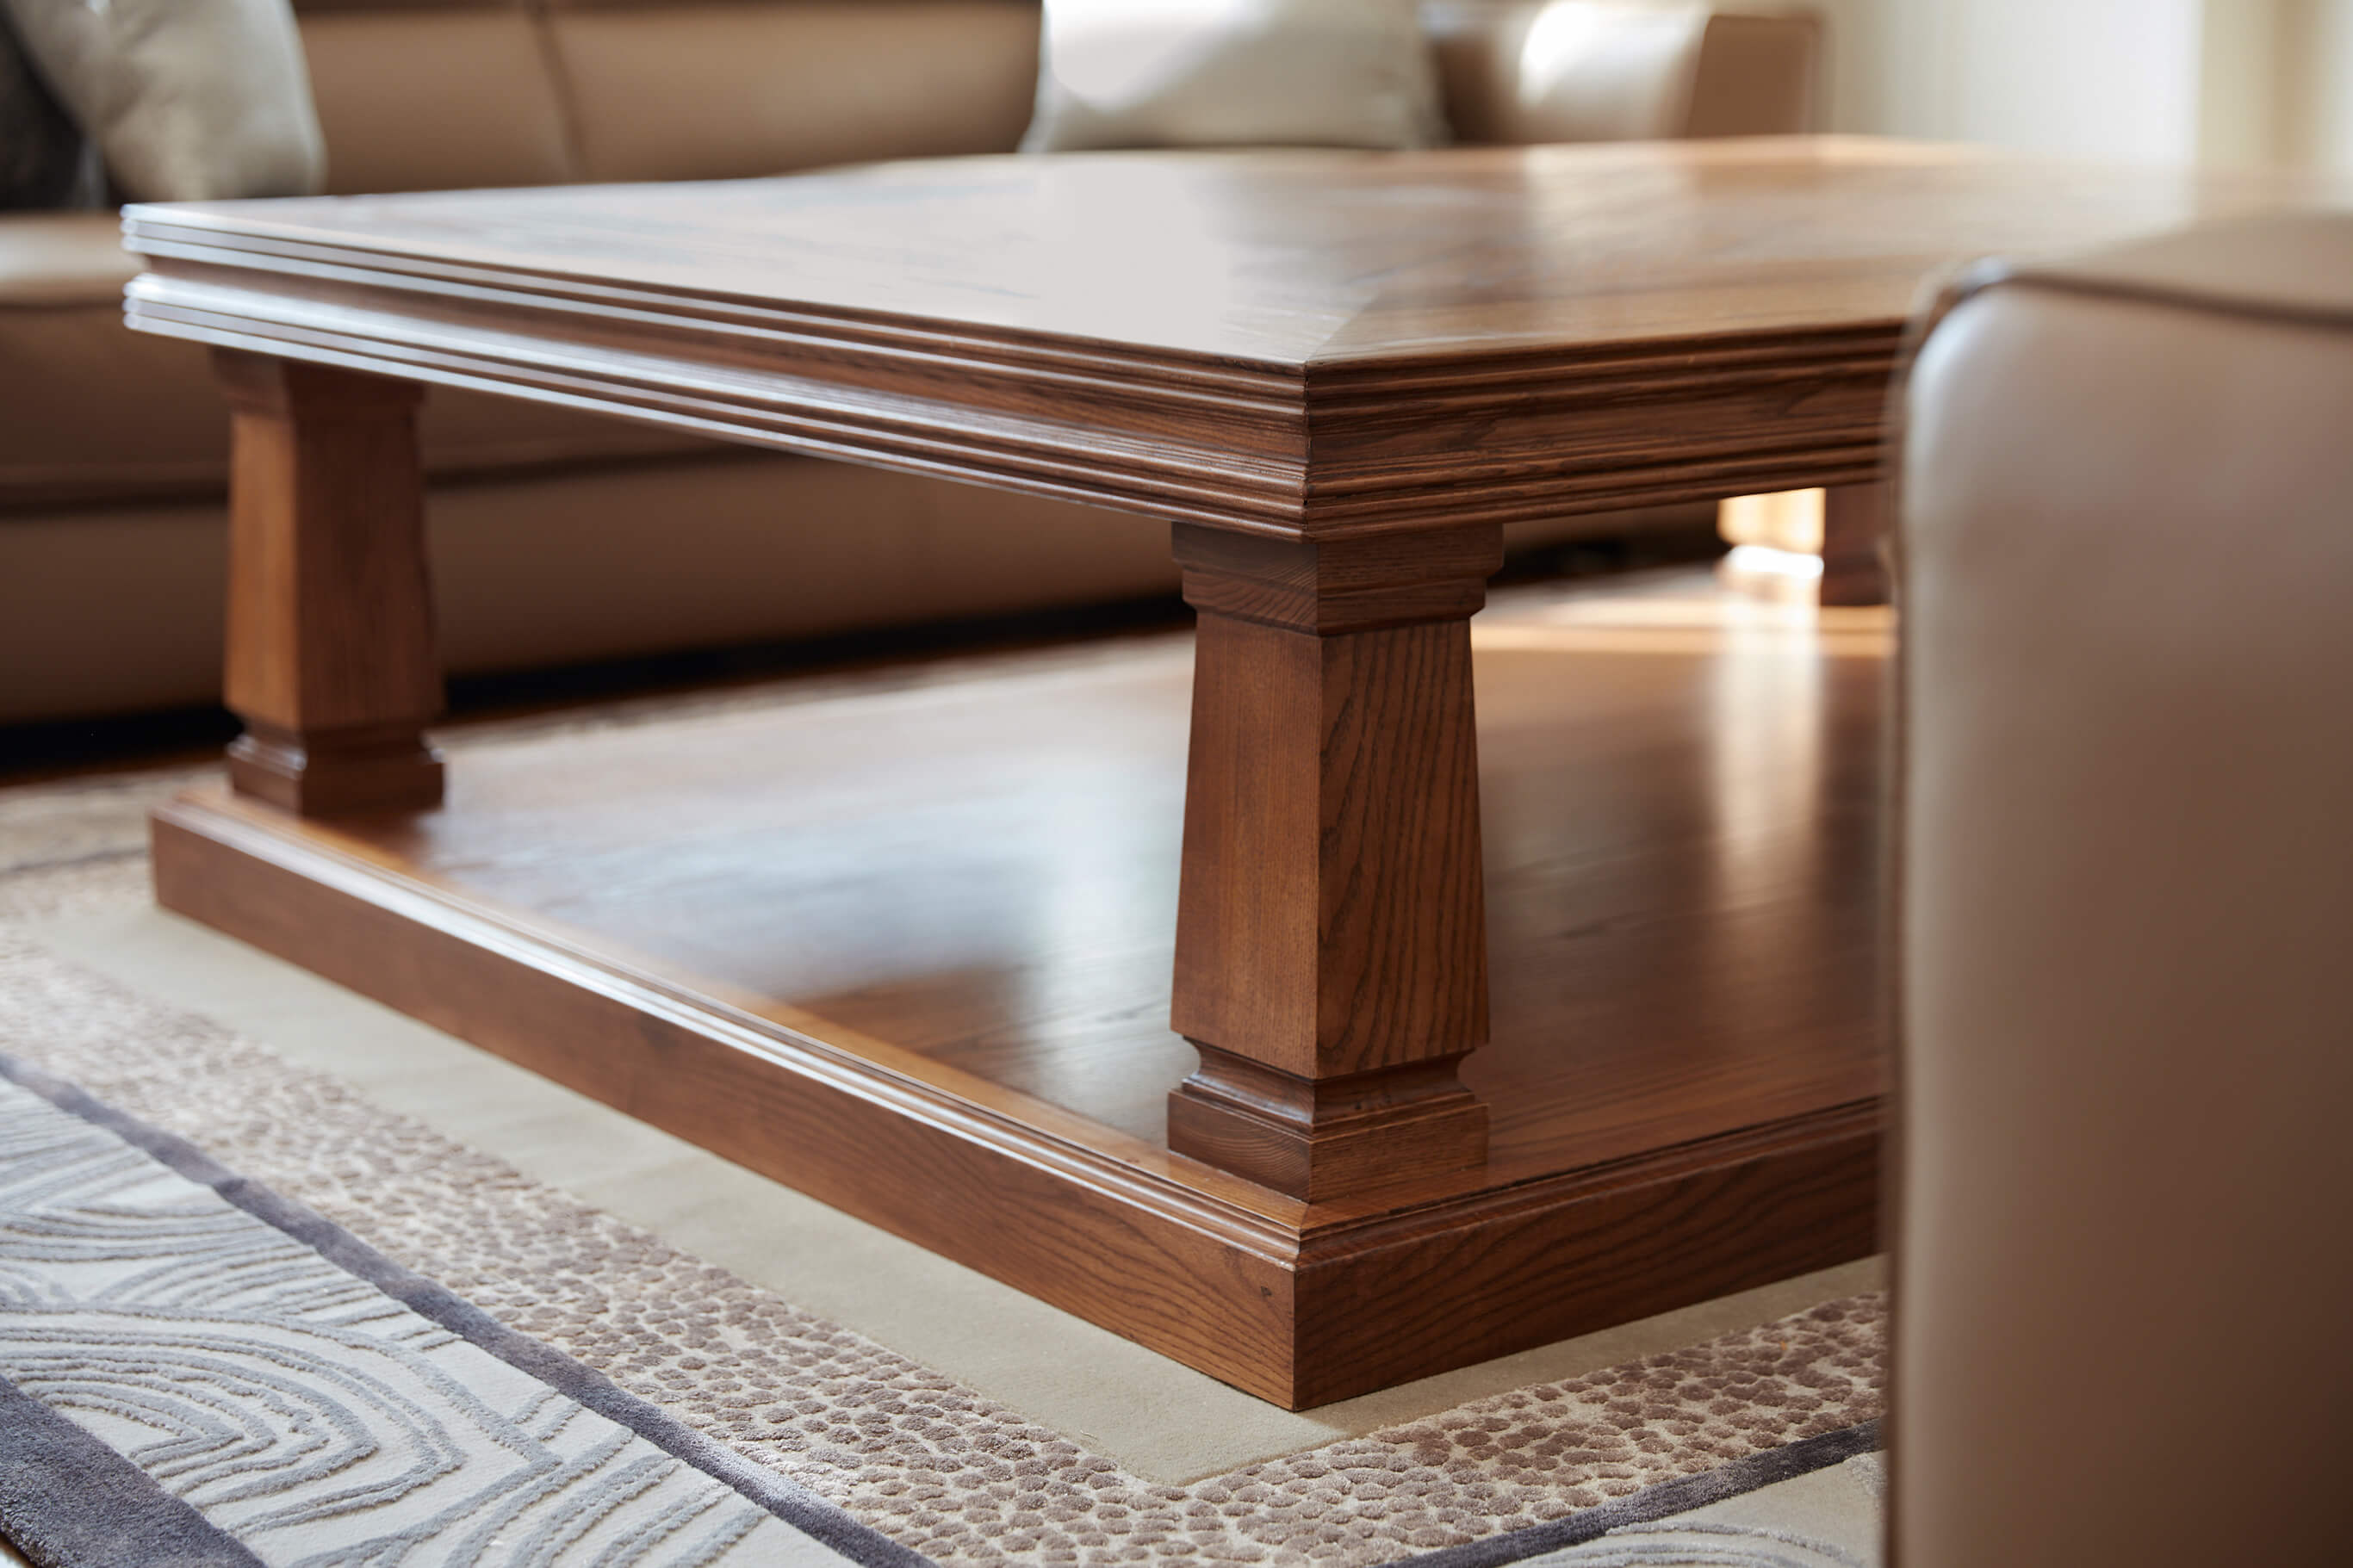 French style handcrafted Parquetry Table